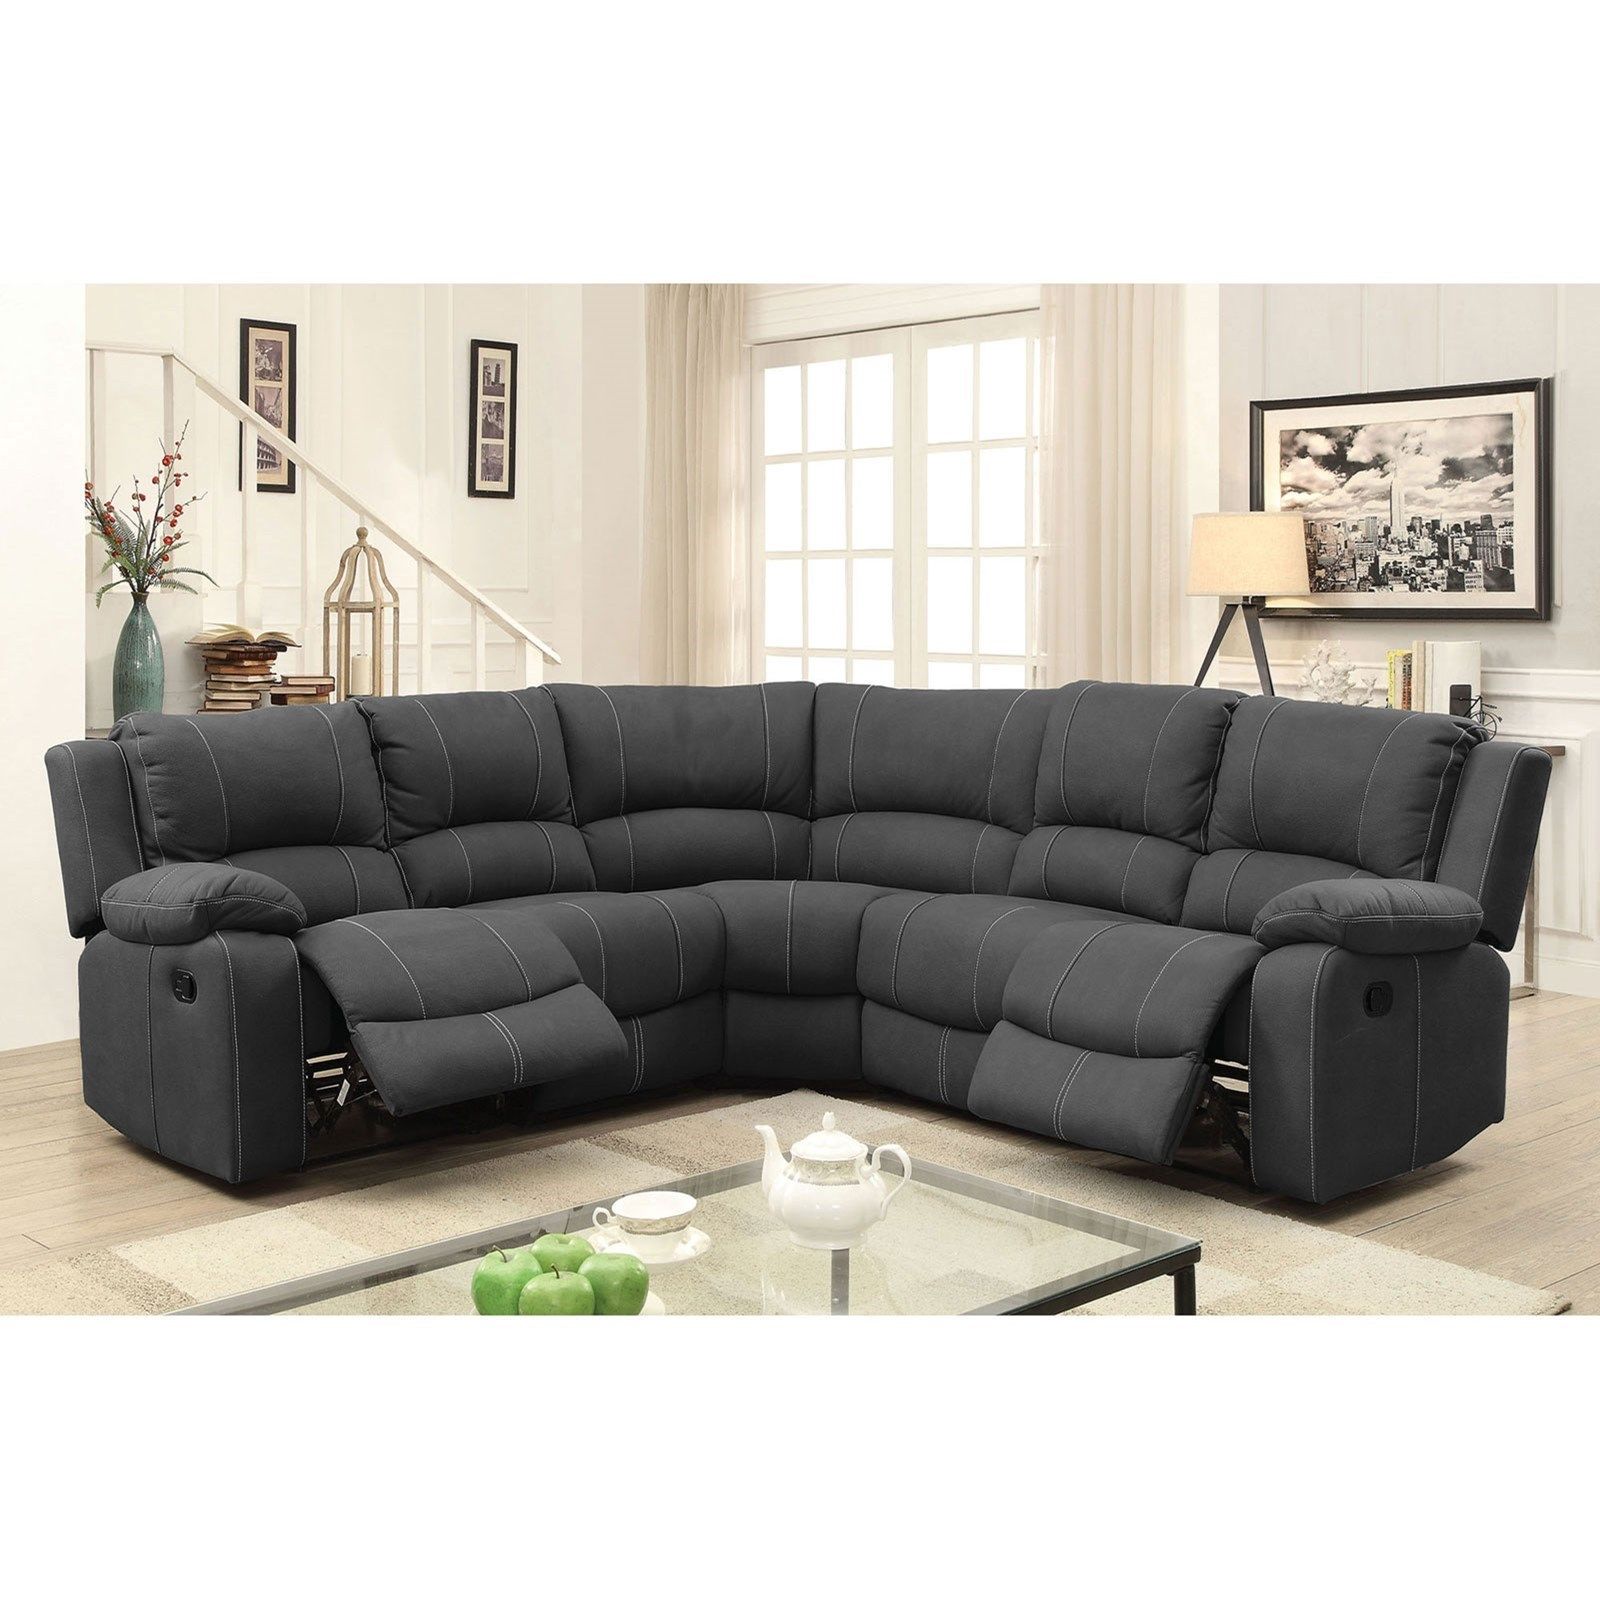 Monique Reclining Sectional by Furniture of America at Dream Home Interiors